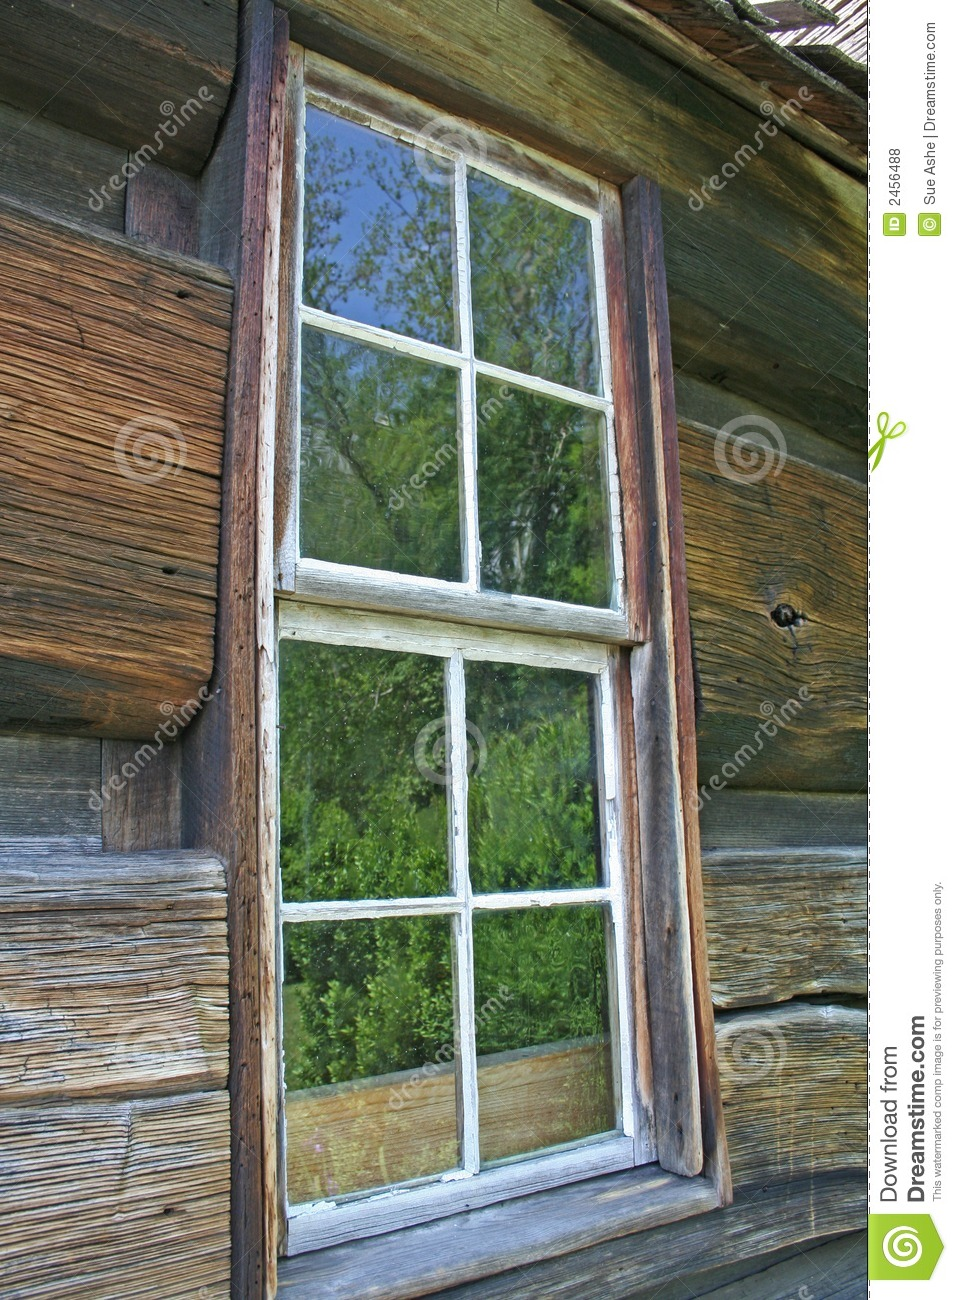 Log Cabin Window Royalty Free Stock Photos Image 2456488